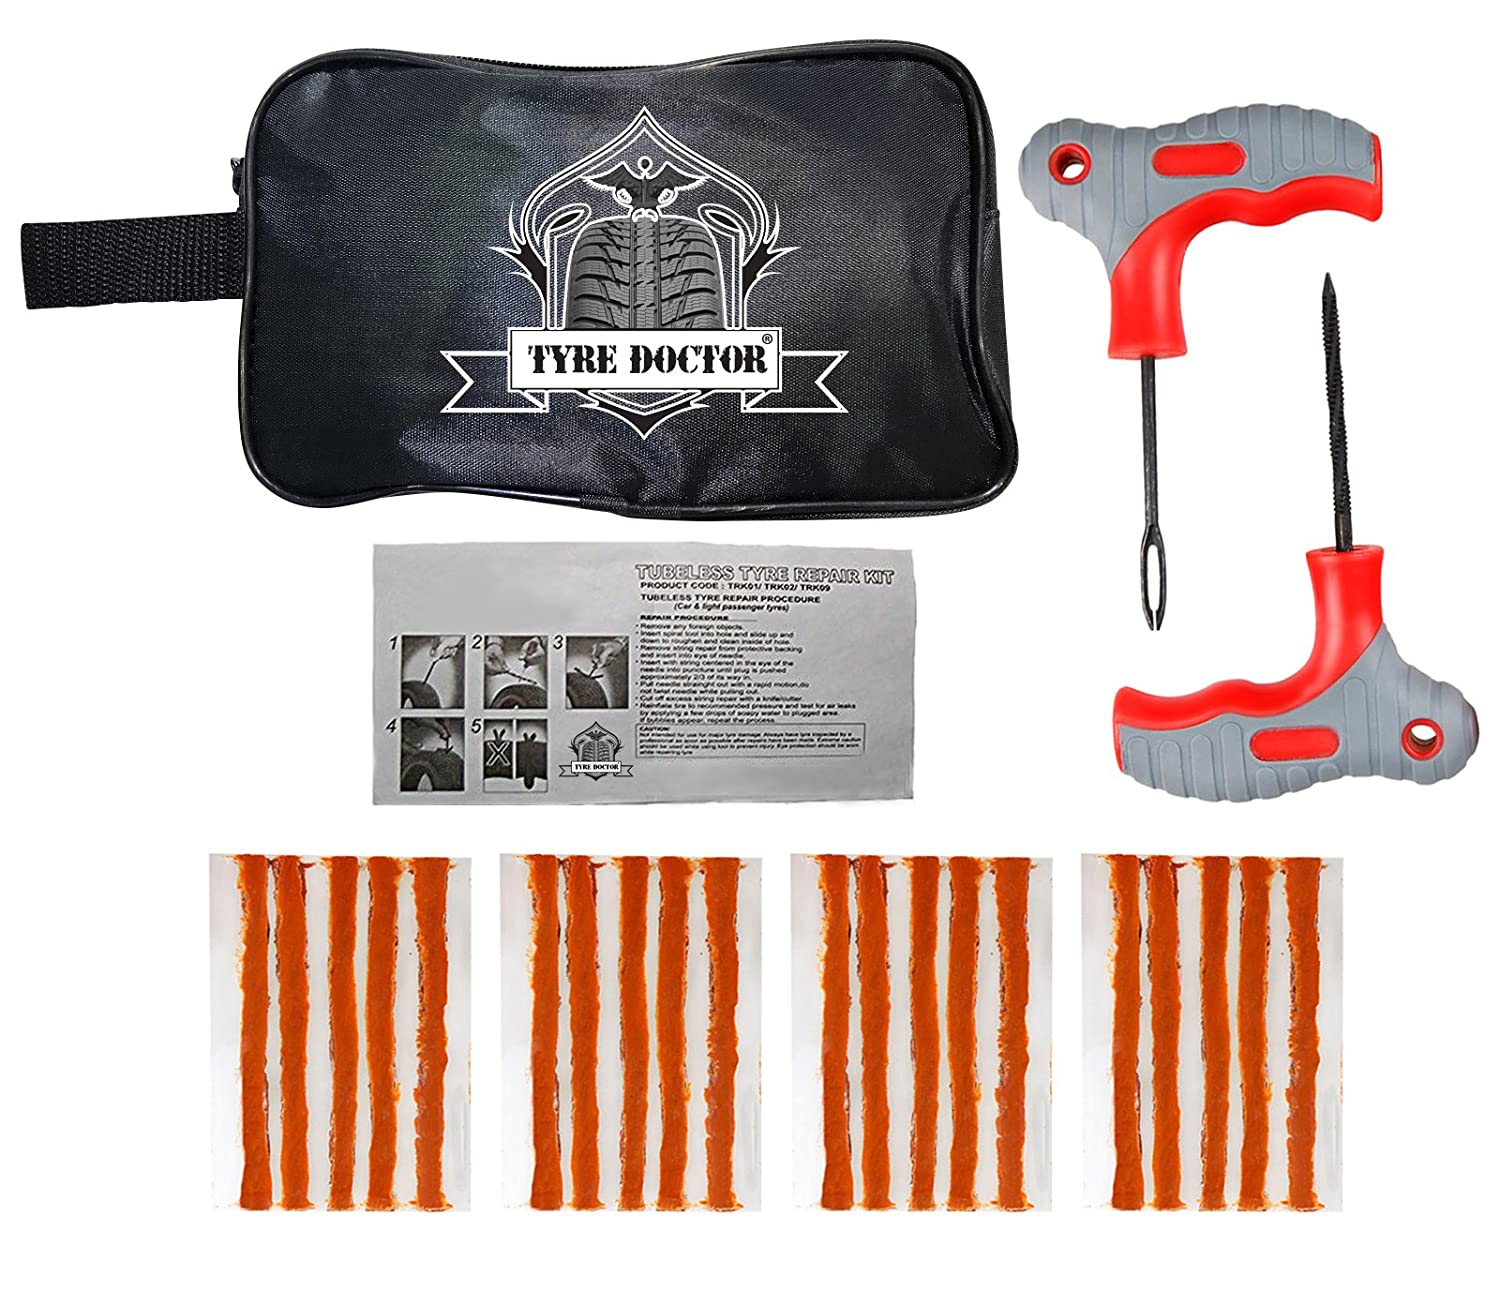 TIRE DOCTOR /® Heavy Duty Emergency Car Van Motorcycle Kit de reparaci/ón de pinchazos de neum/áticos sin c/ámara